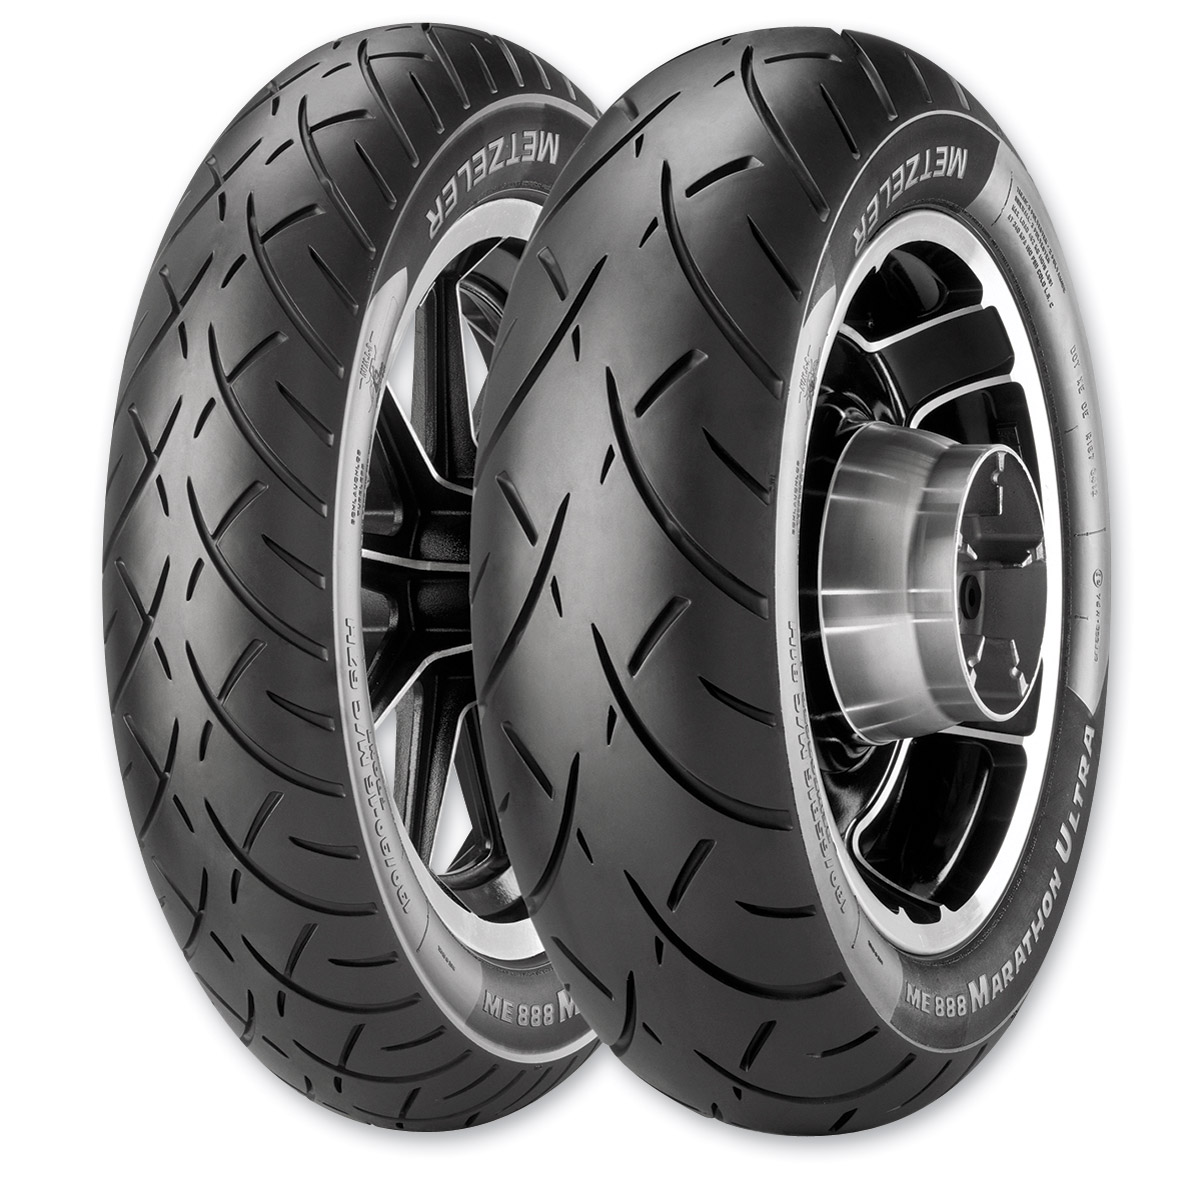 Metzeler ME888 150/80B16 Rear Tire